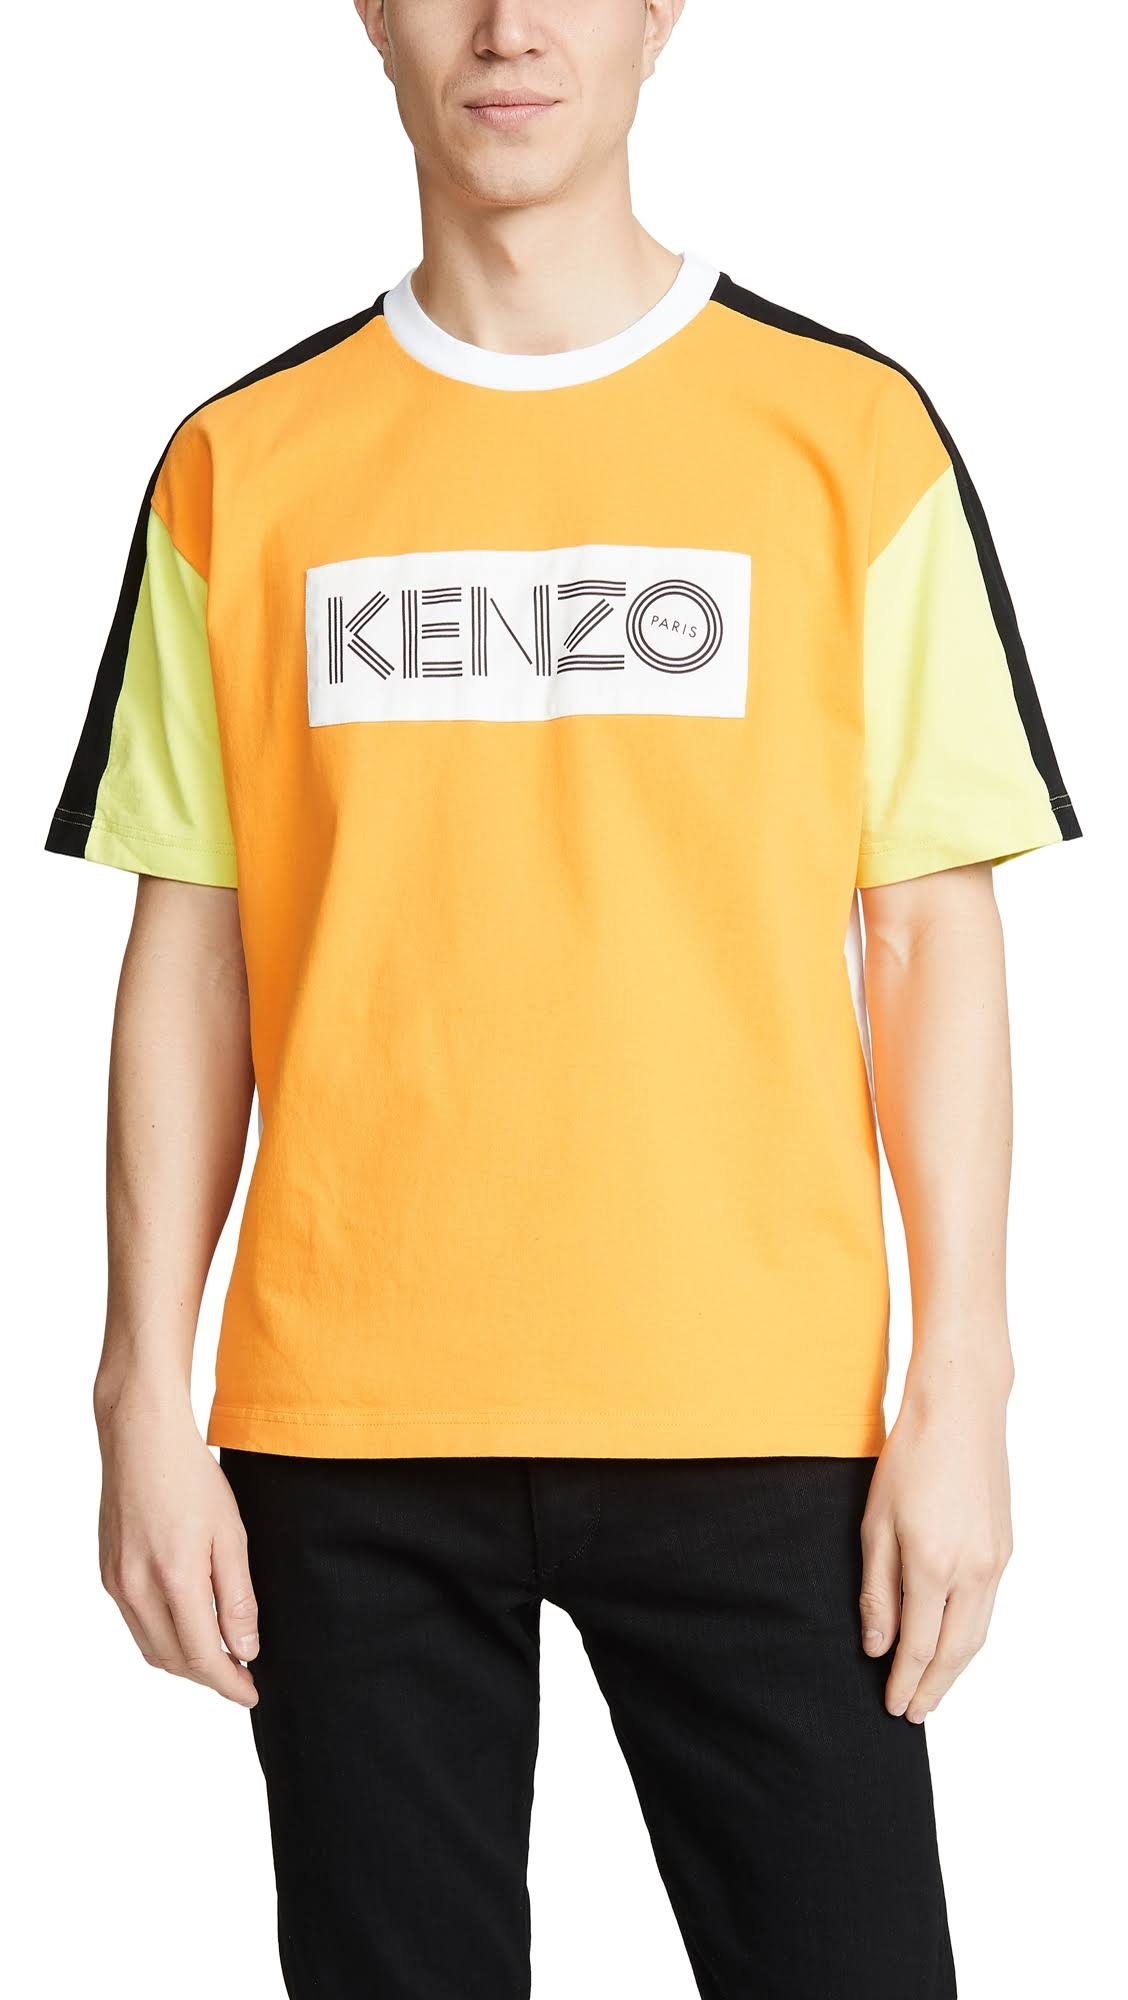 Logo shirt Colorblocked Weißes T Orange Und Kenzo RqIaY